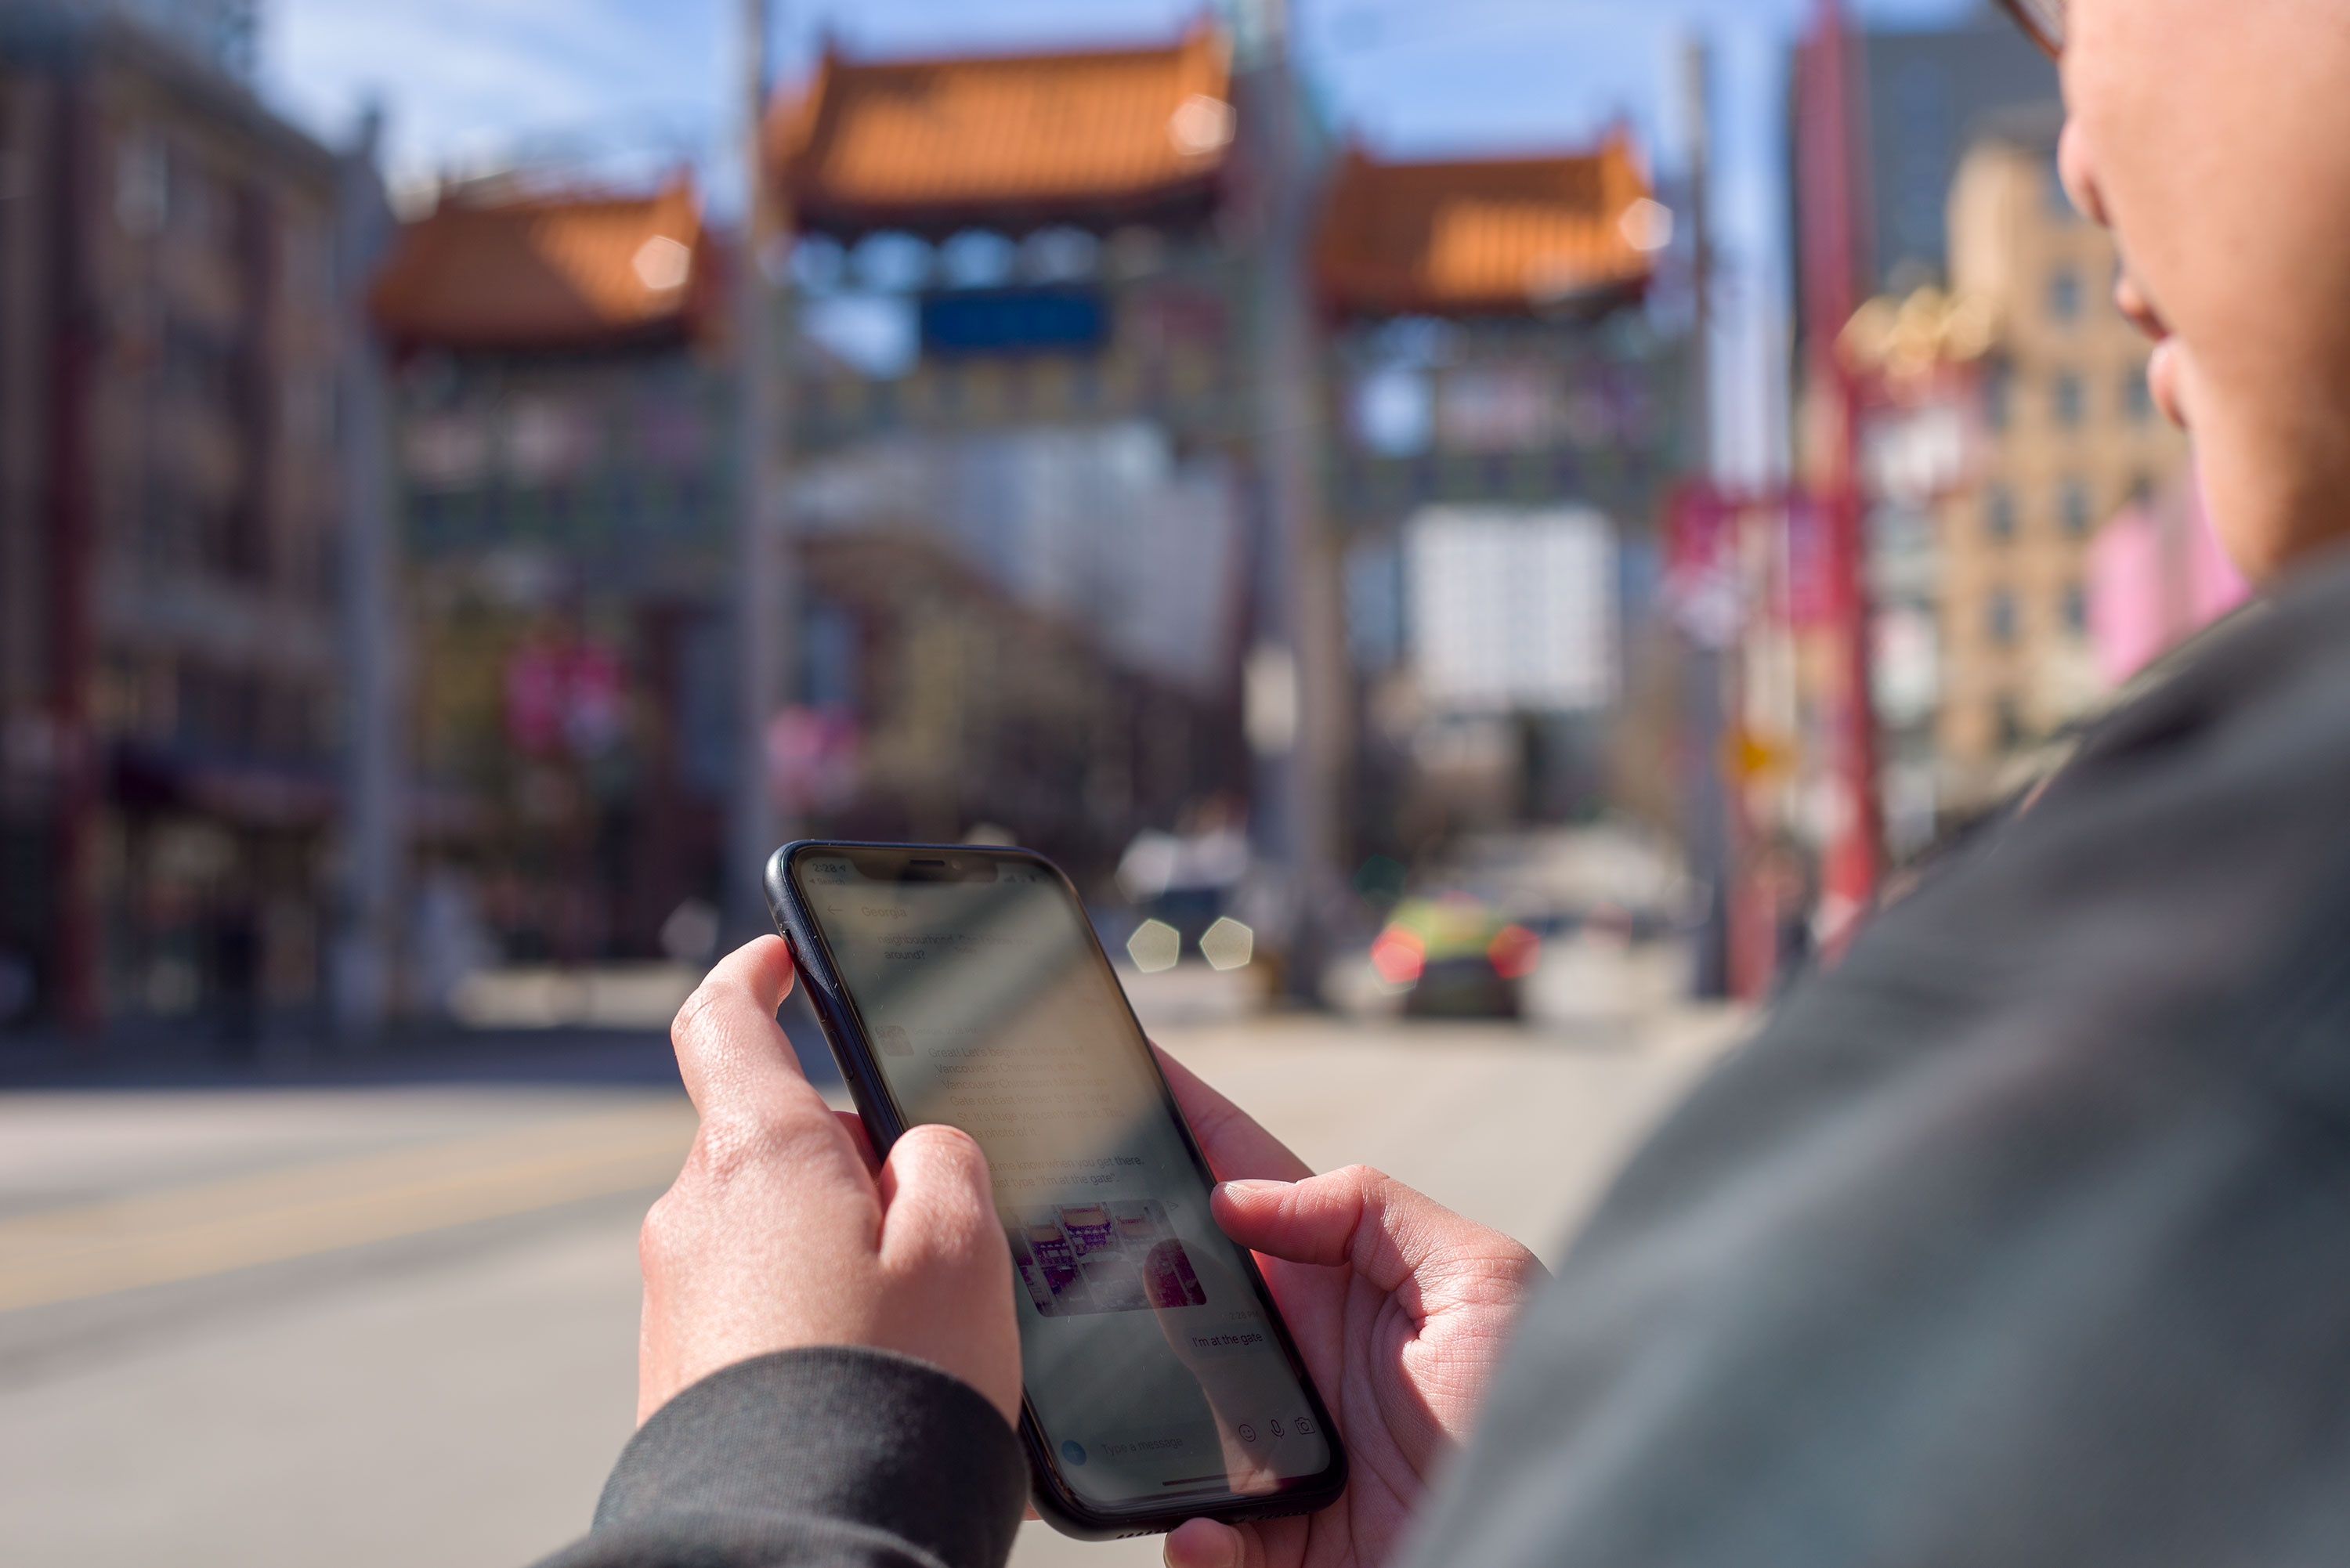 Georgia chatbot being used at Chinatown gates